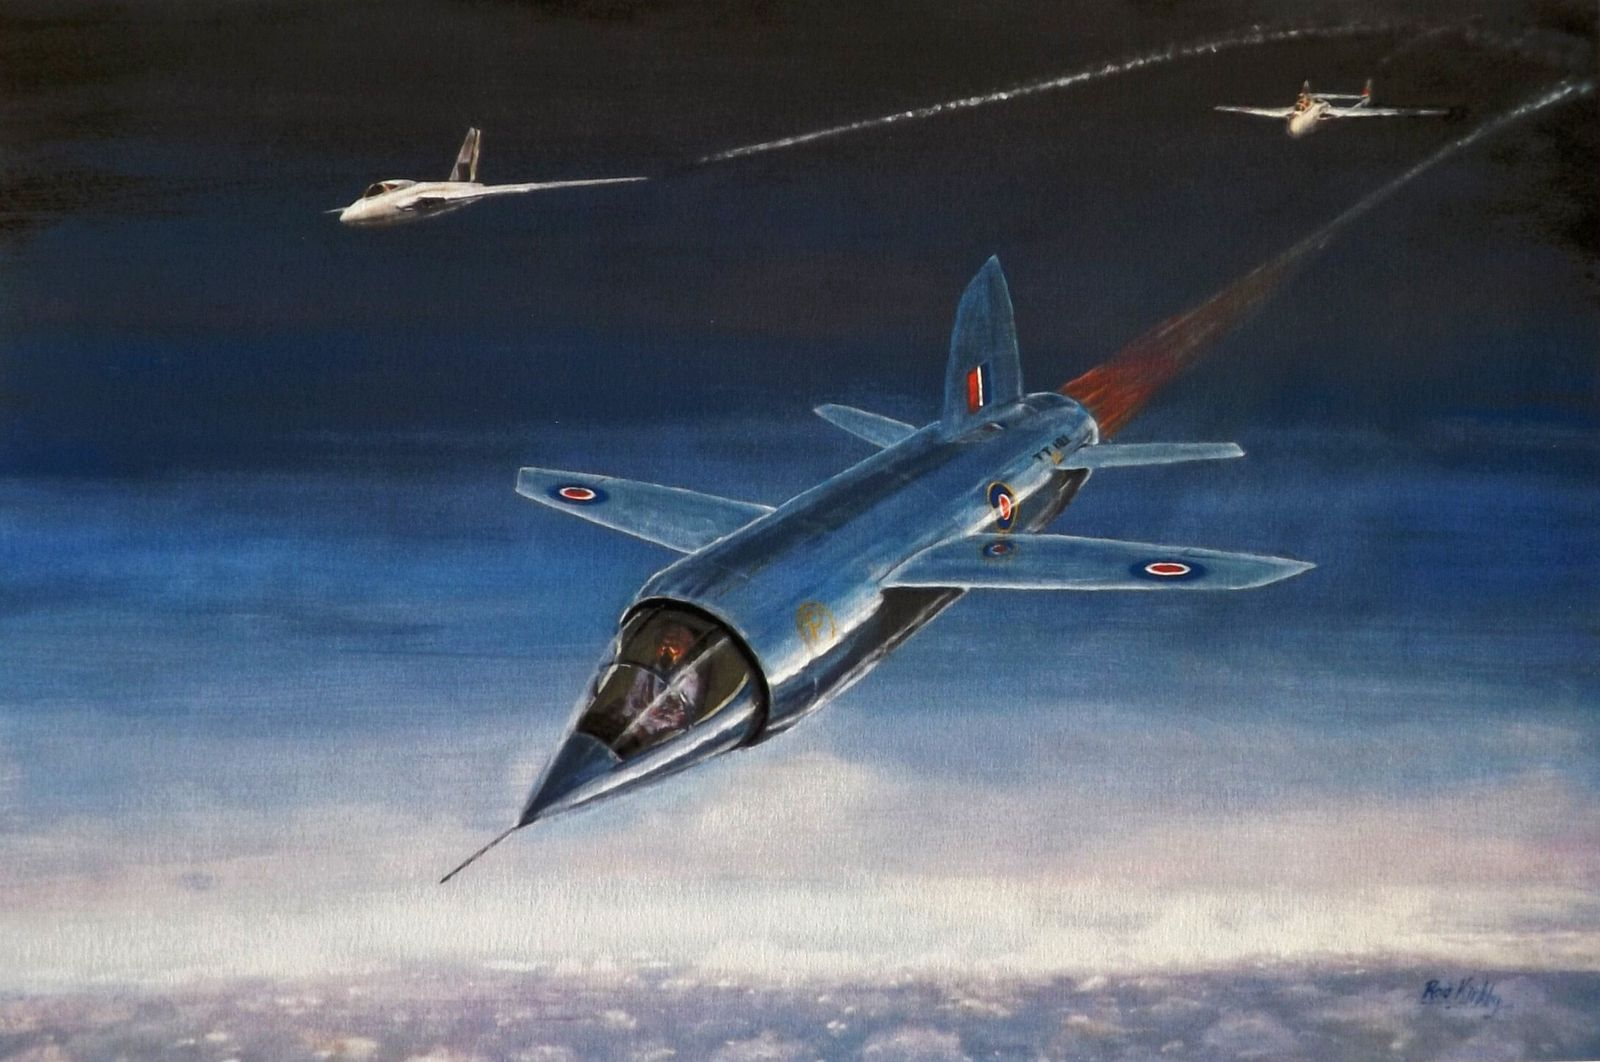 Aviation artist and former aerodynamics research engineer Rod Kirkby's impression of what a successful flight in the ...